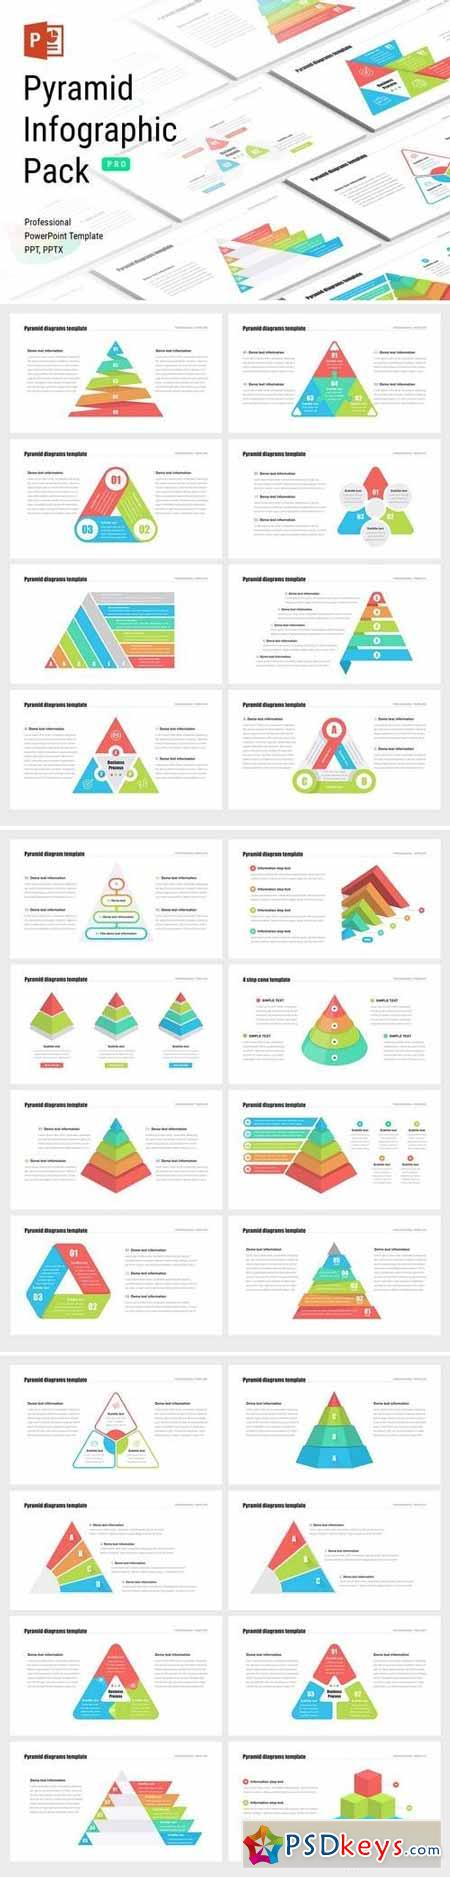 Pyramid infographic pack - Powerpoint, Keynote, Google Sliders Templates